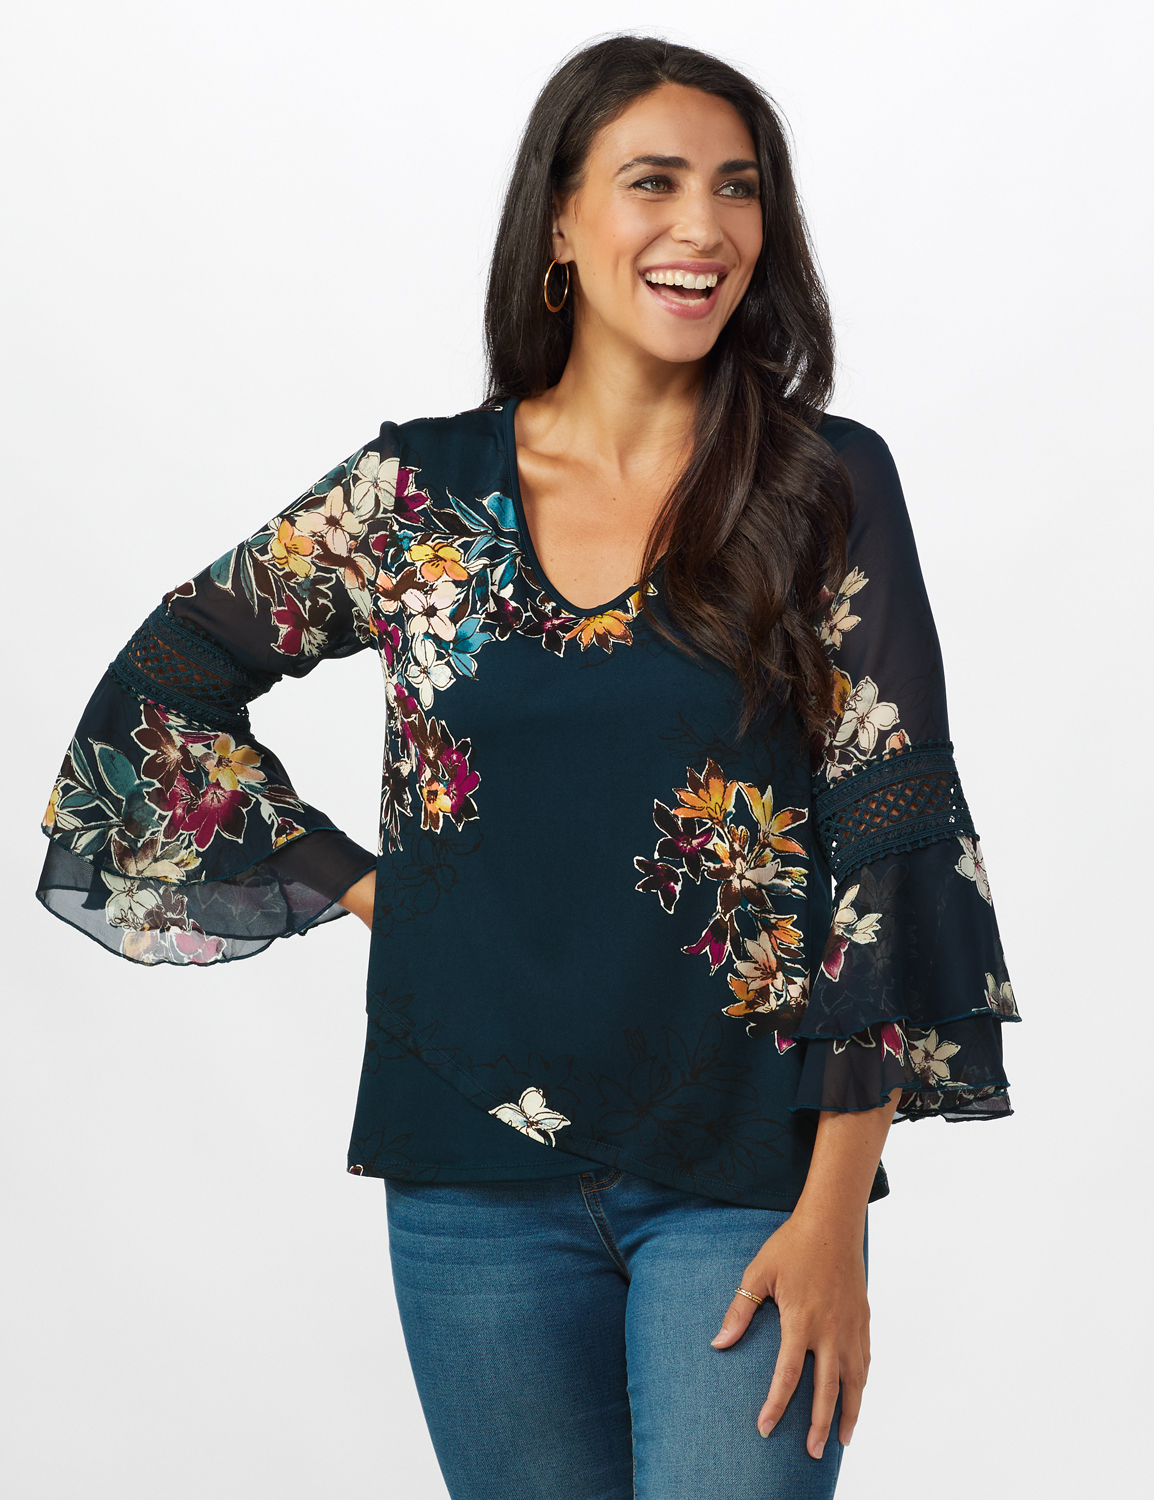 Crochet Trim V-Neck Floral Knit Top -Dark Teal/Magenta/Brown - Front